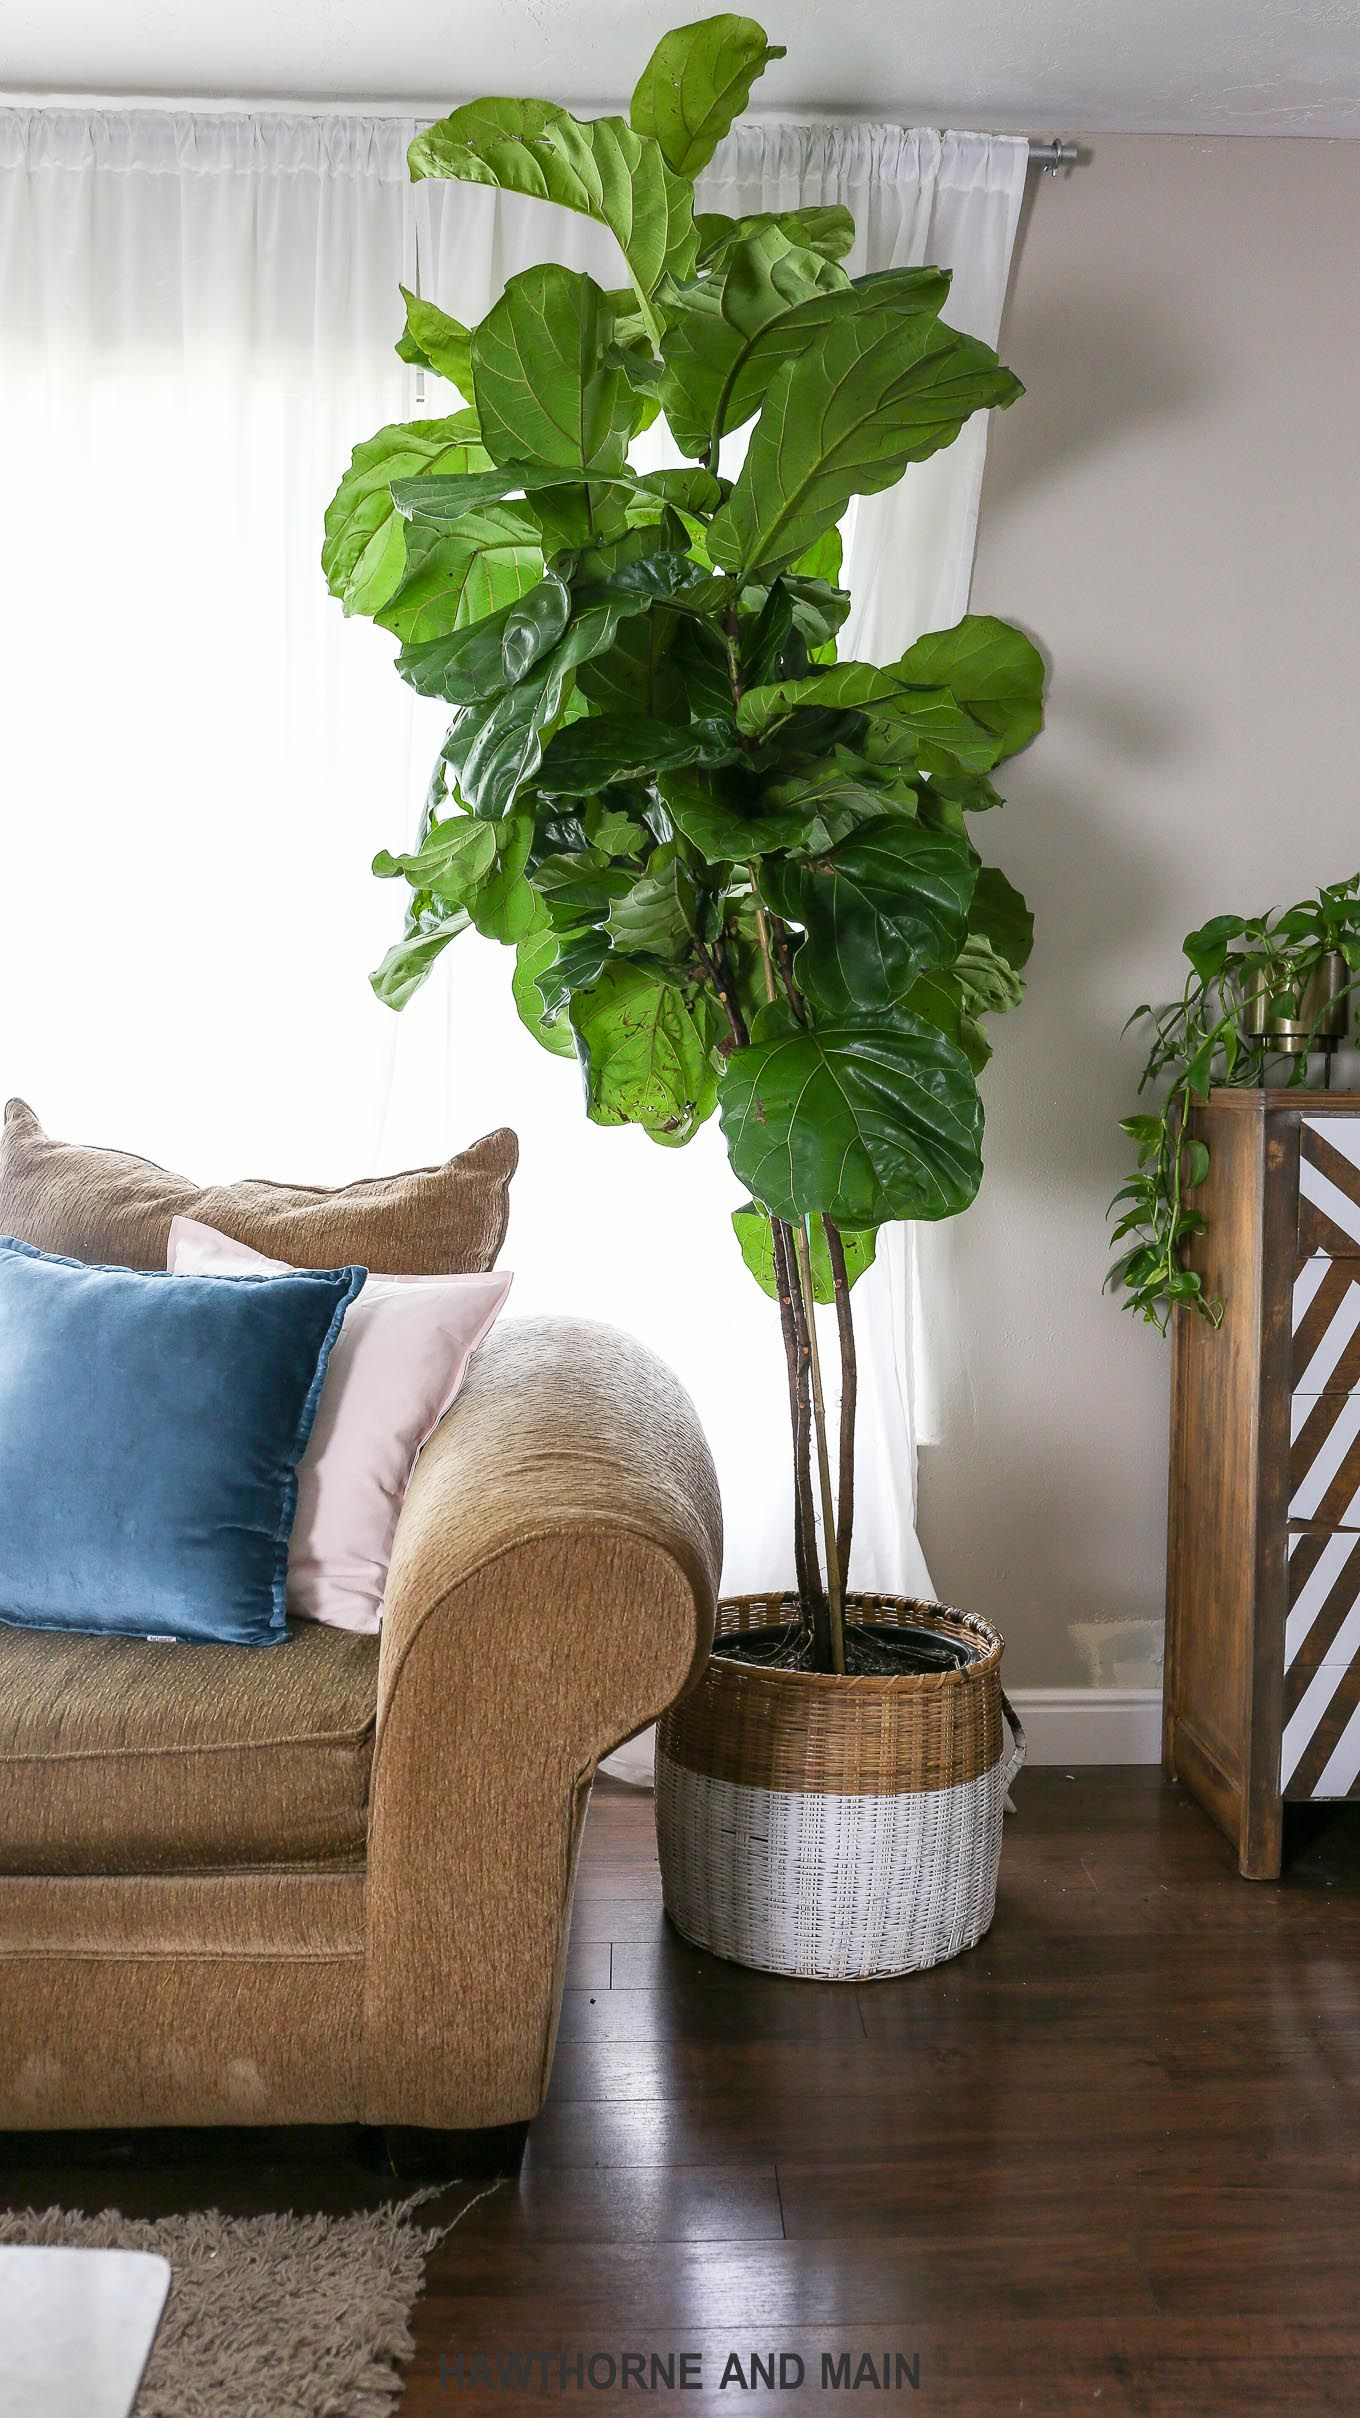 fig tree care on how to care for a fiddle leaf fig tree hawthorne and main fig leaf tree fiddle fig tree fiddle leaf fig tree pinterest